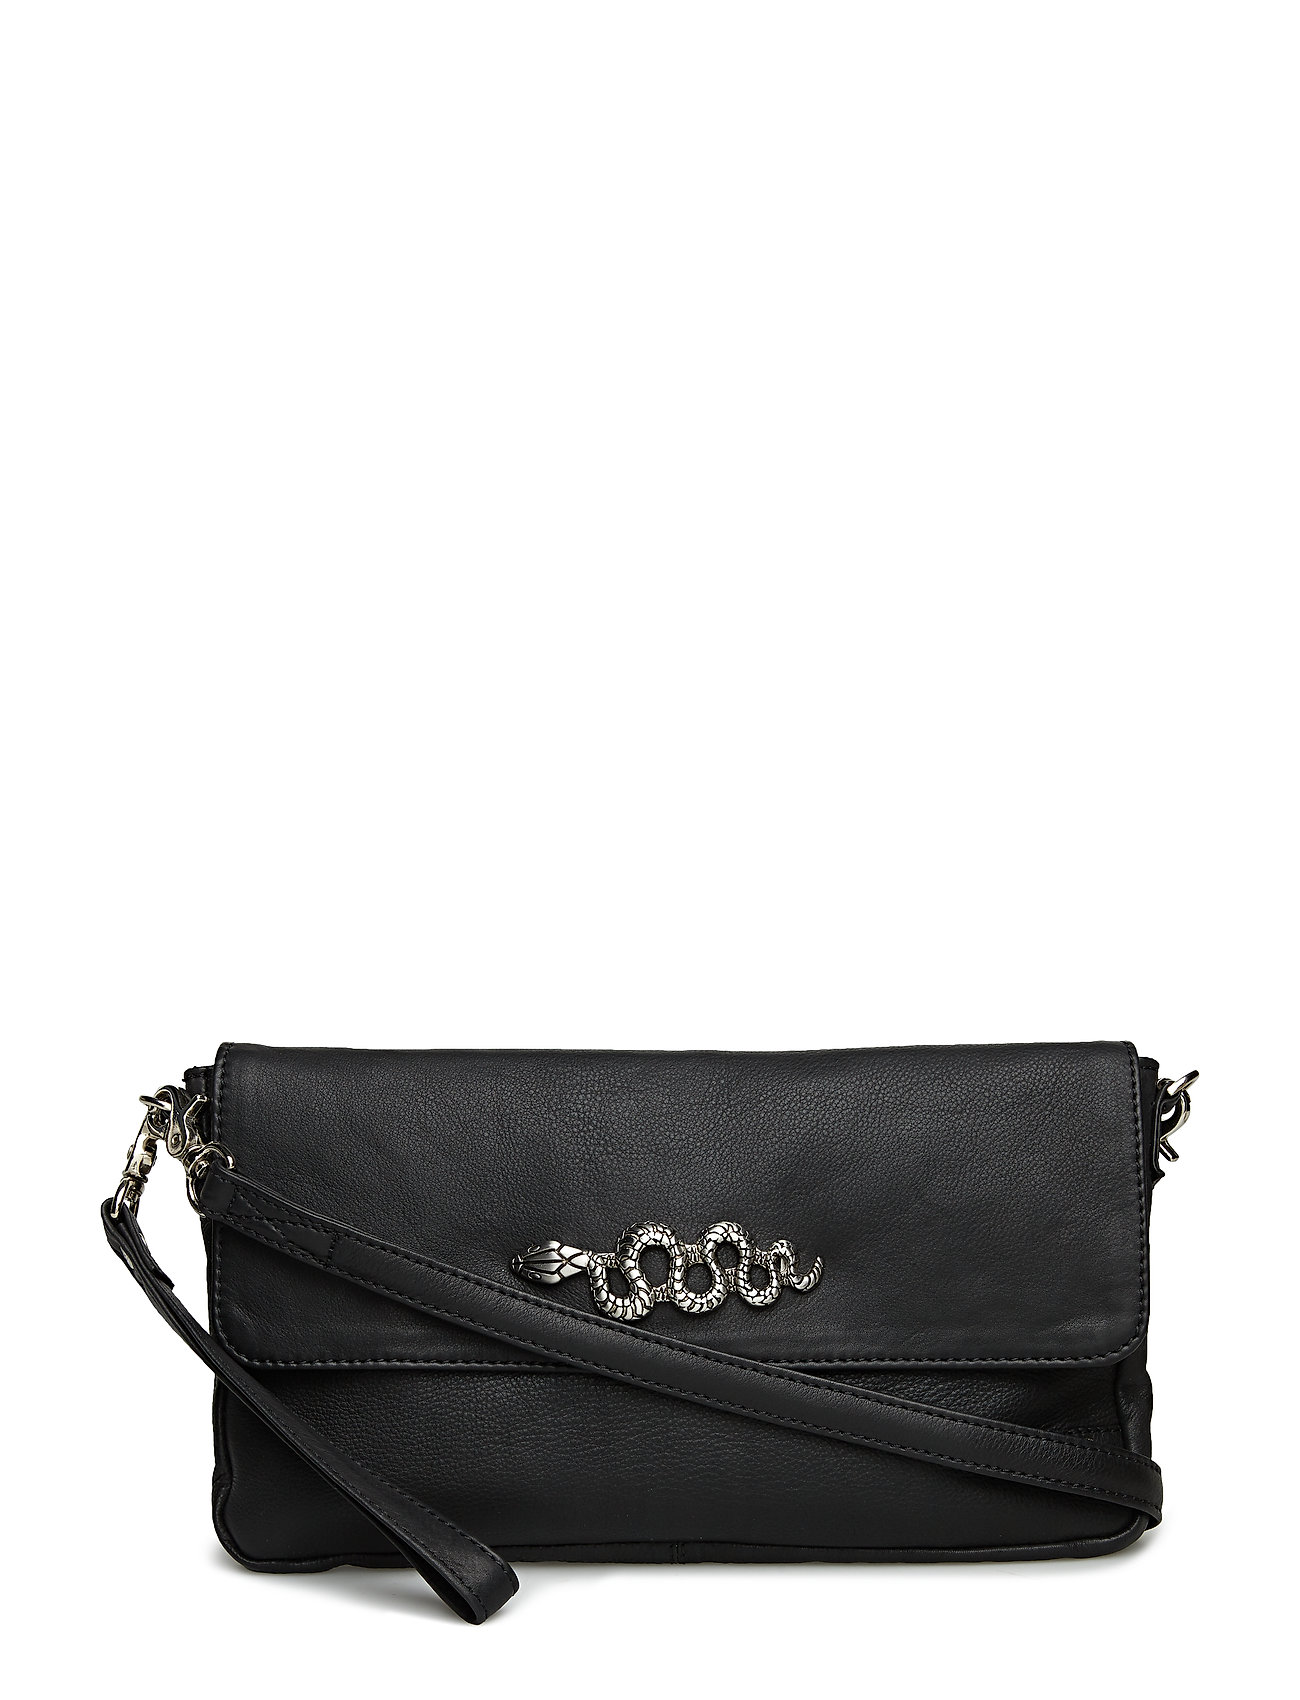 Image of Small Bag / Clutch Bags Small Shoulder Bags/crossbody Bags Sort DEPECHE (3101136265)